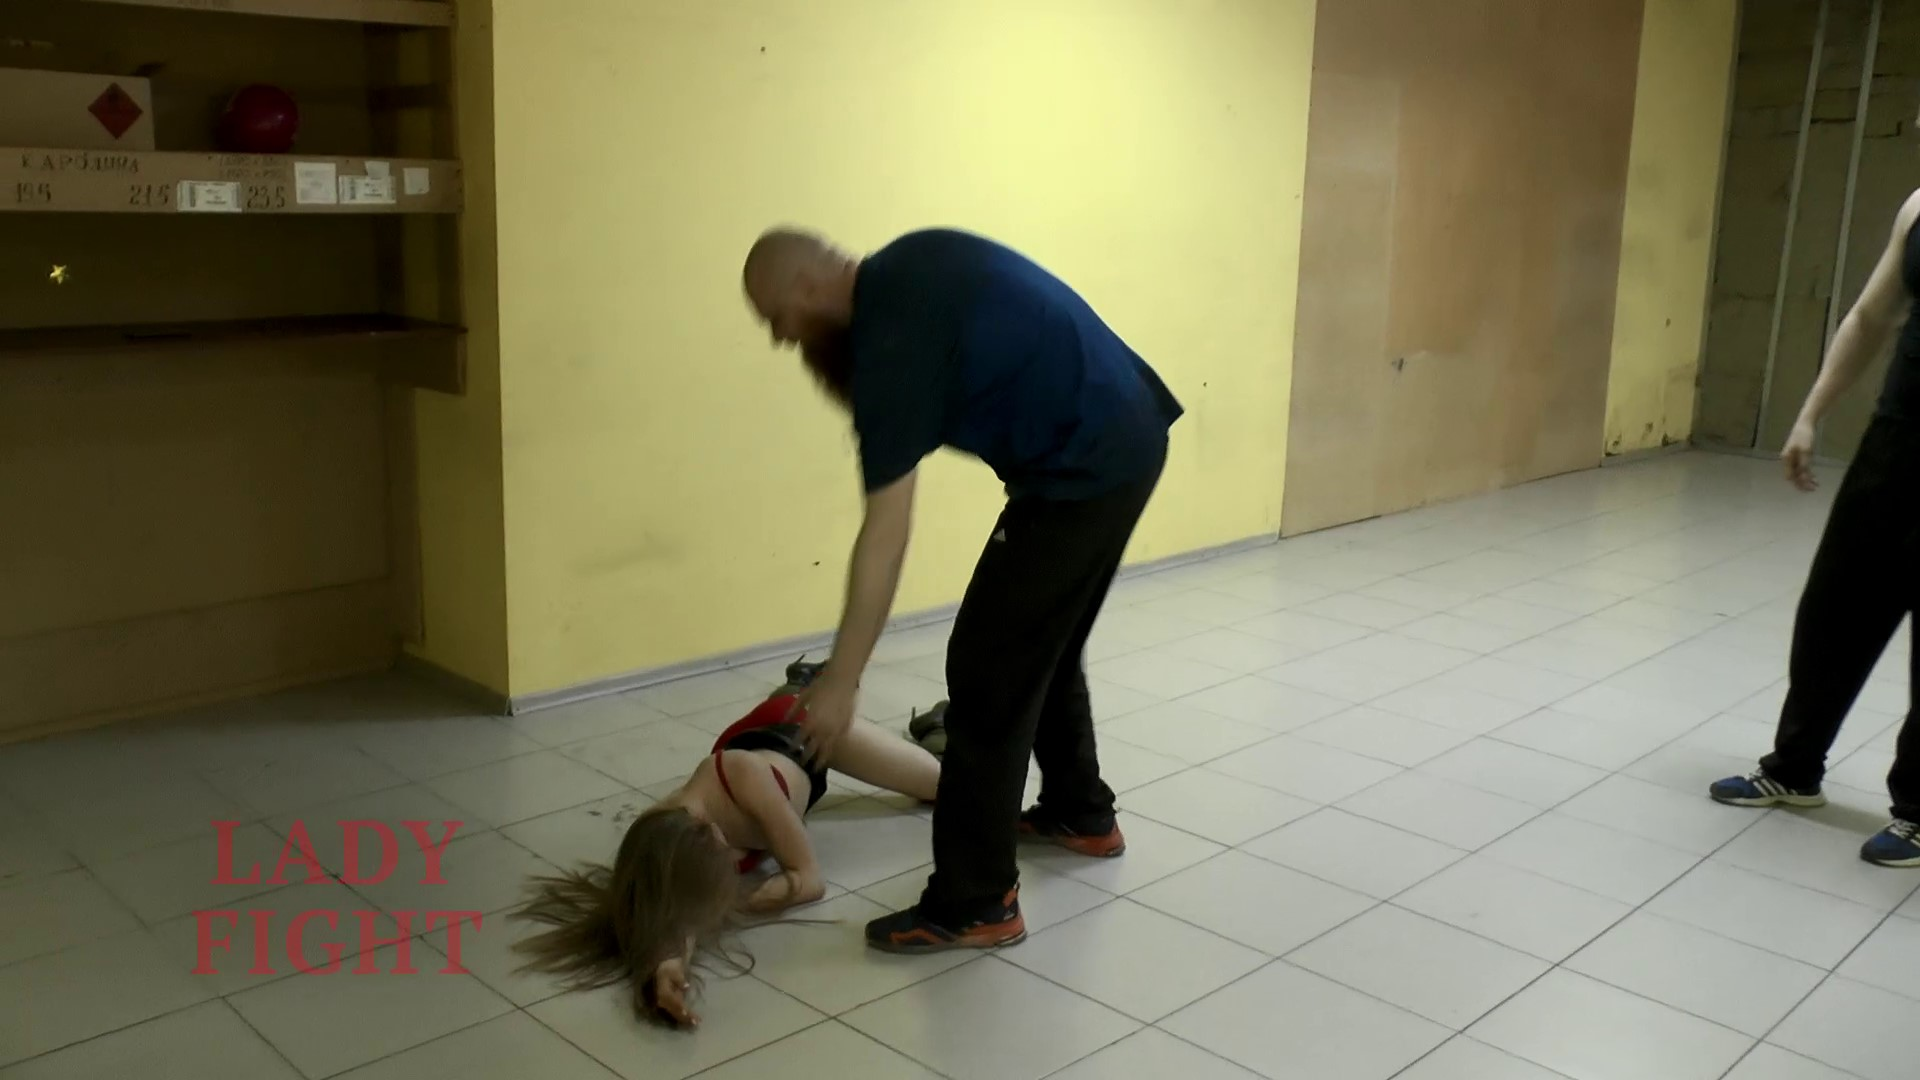 LADYFIGHT-Deadly-Wrestling-For-Lora-100